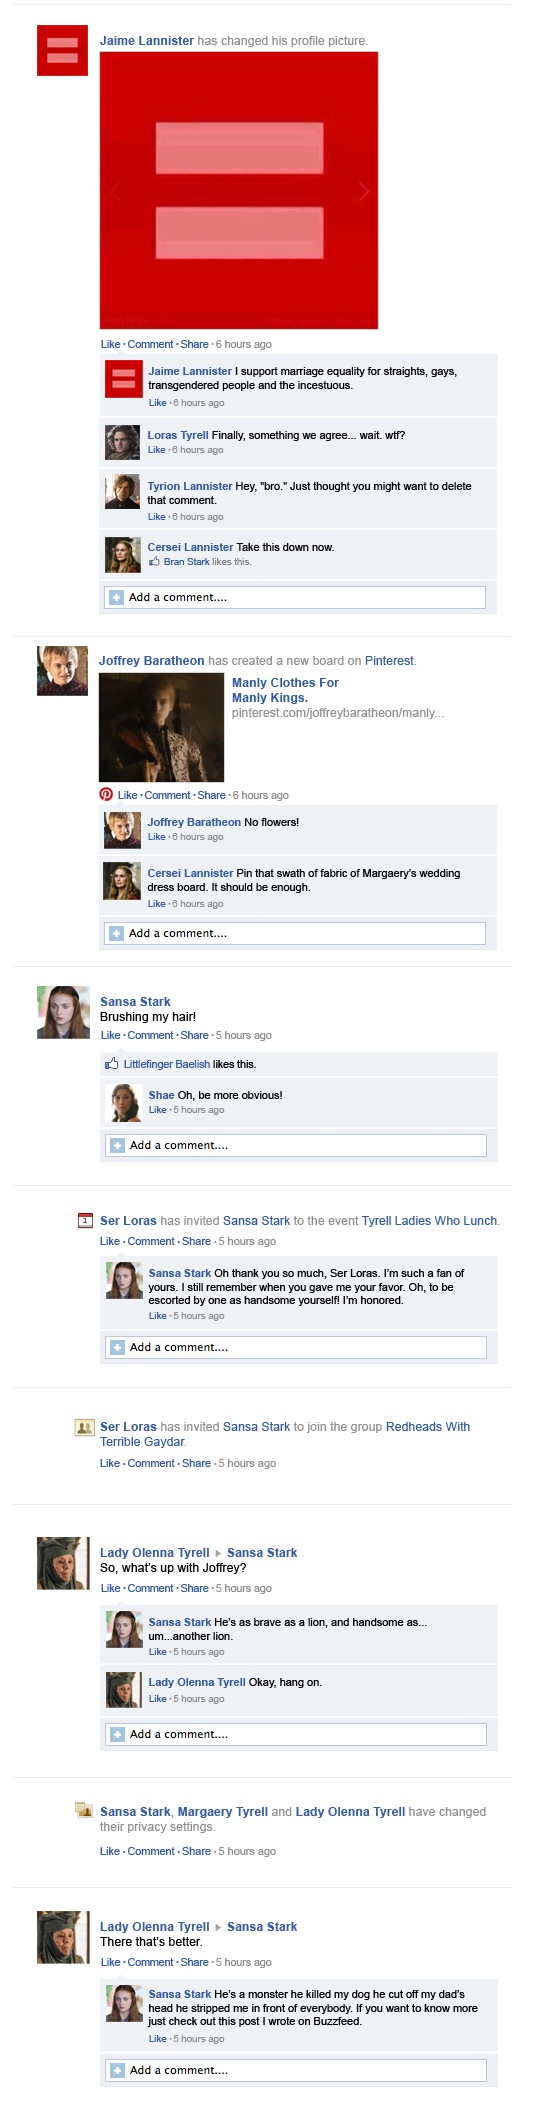 Game of Thrones op Facebook